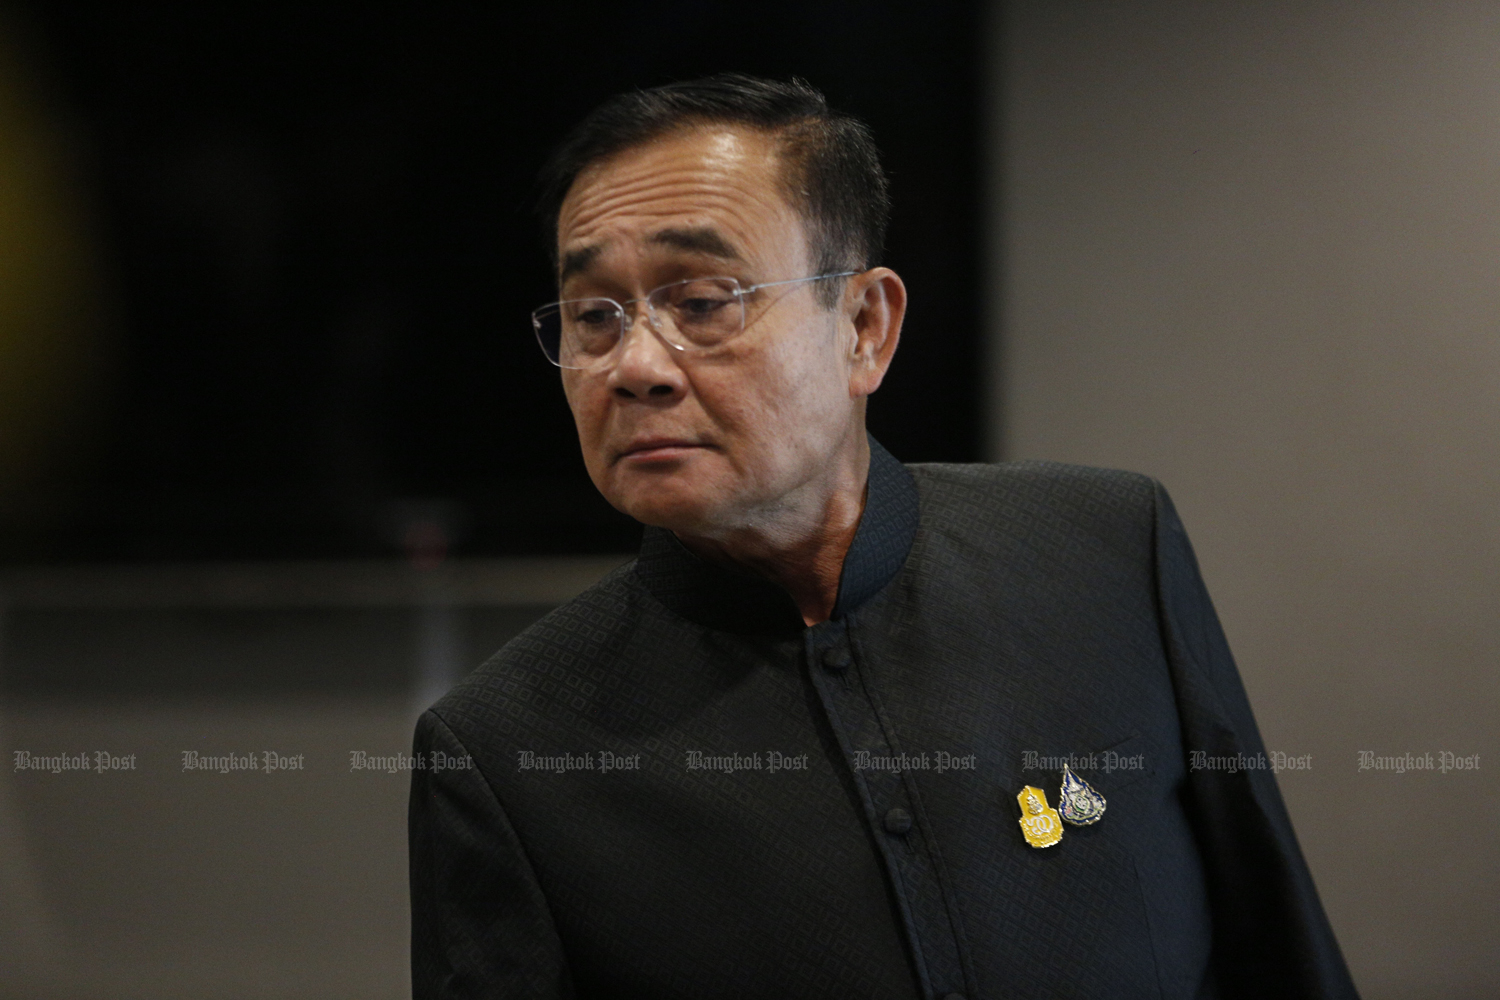 Prime Minister Prayut Chan-o-cha checks the final version of the cabinet lineup.